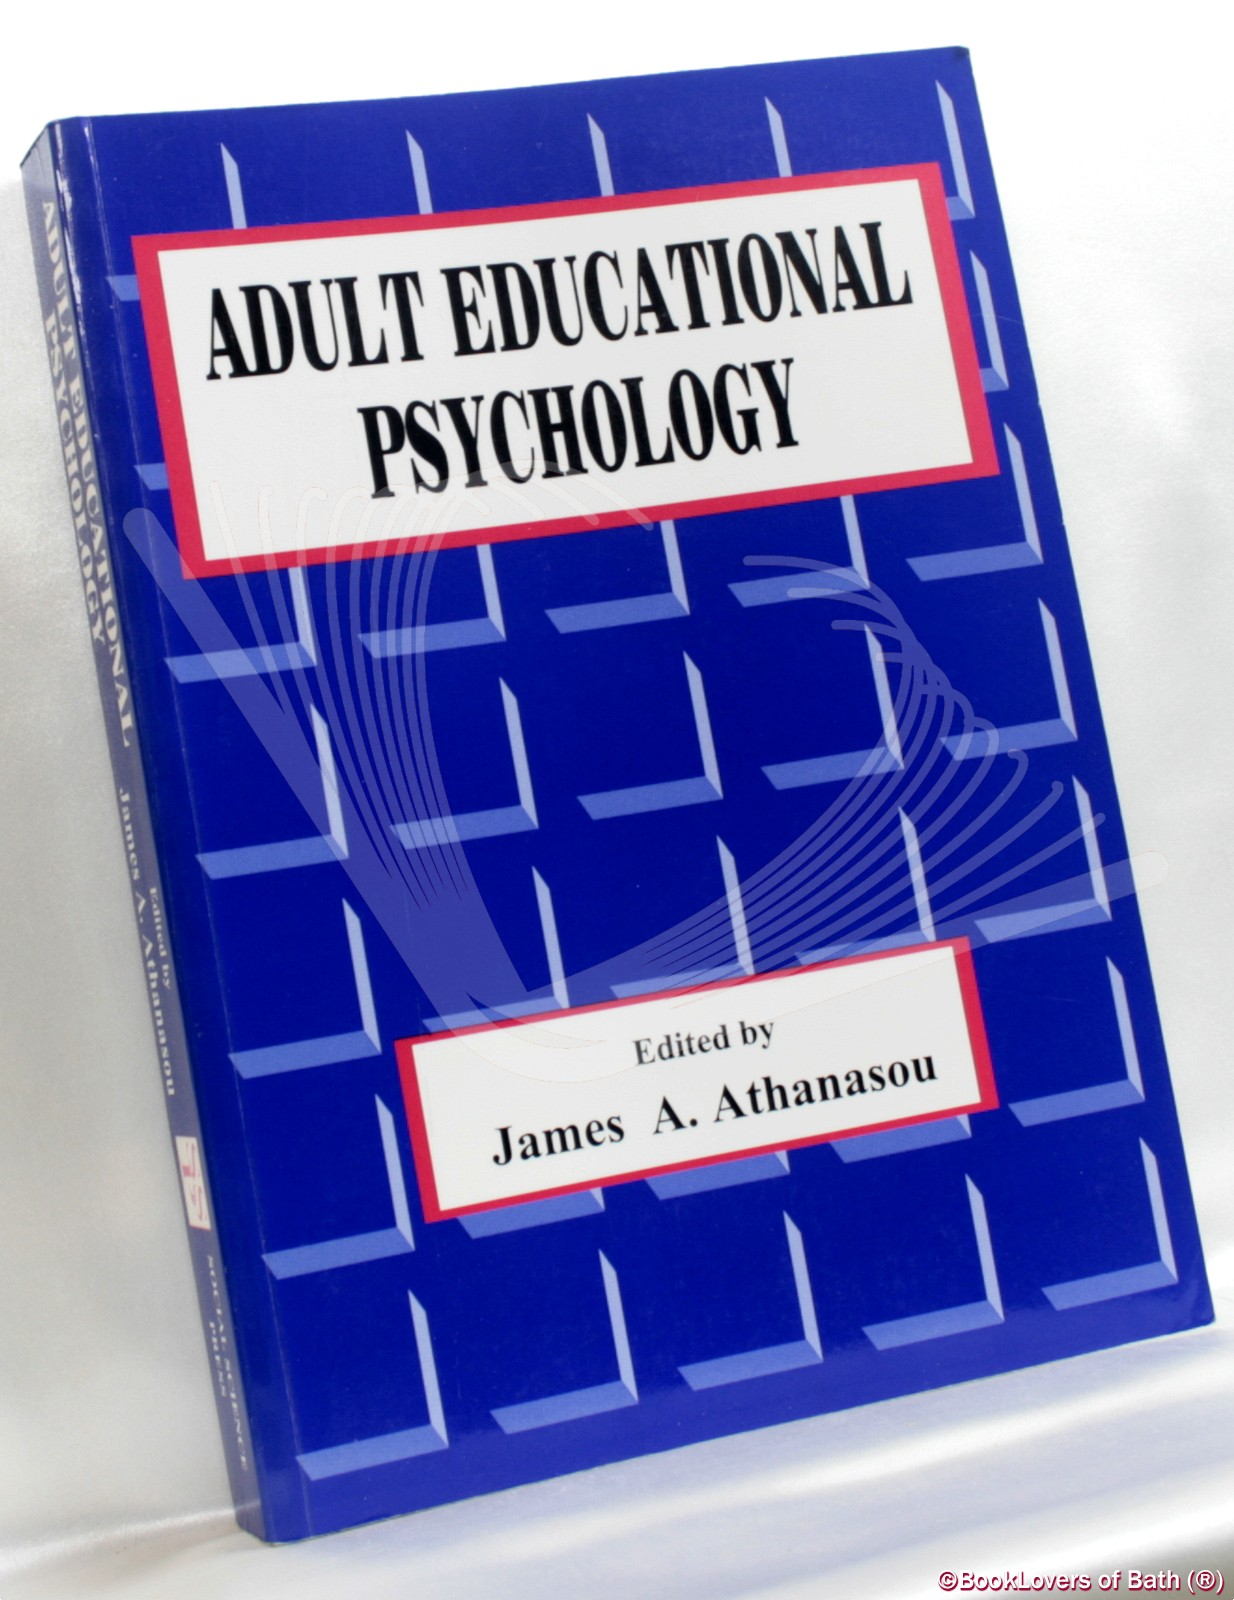 Adult Educational Psychology - Edited by James A. Athanasou